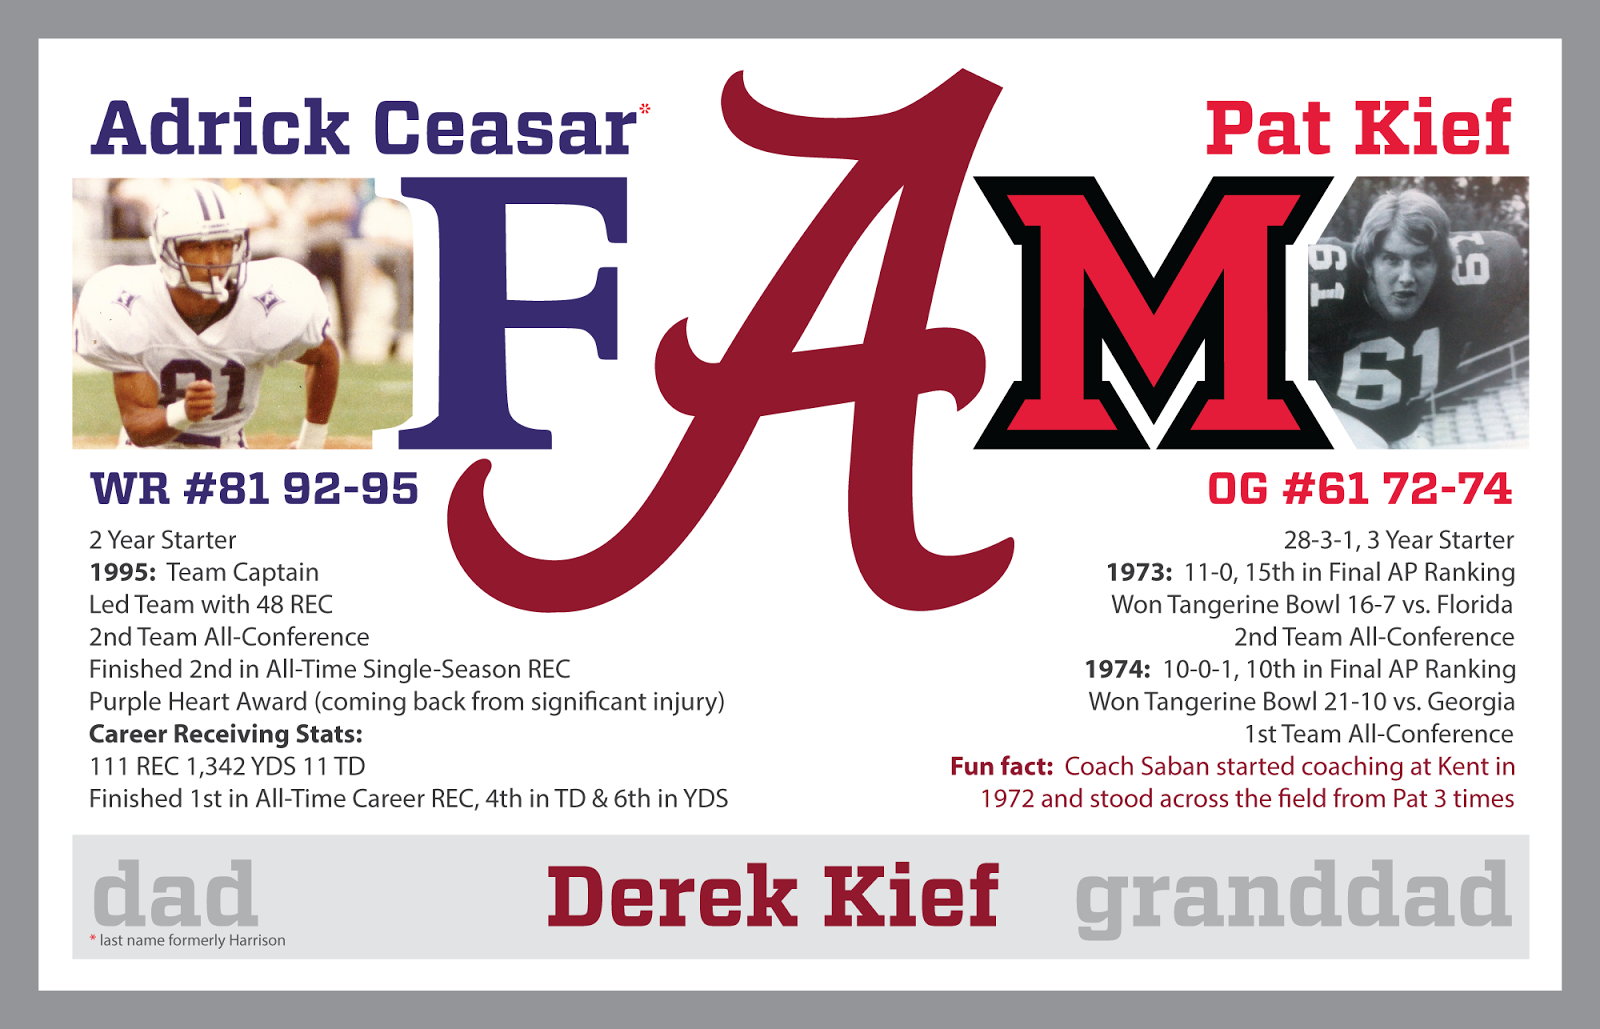 Adrick Ceaser (Derek's dad) was a WR at Furman and Pat Kief (Derek's granddad) was a OG at Miami (OH)